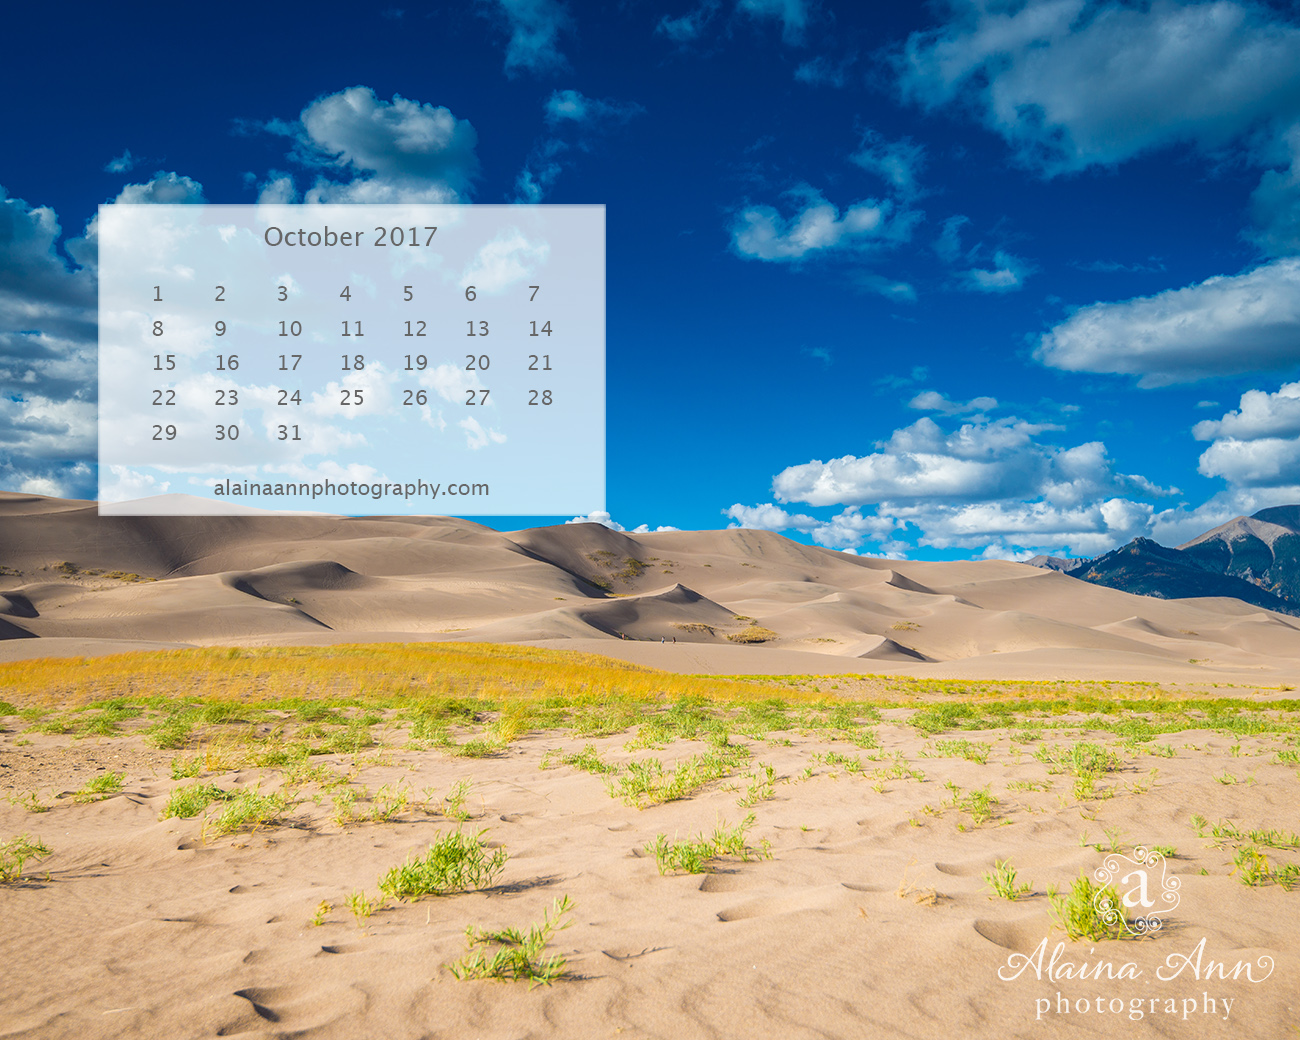 October 2017 Wallpaper Calendar | Alaina Ann Photography